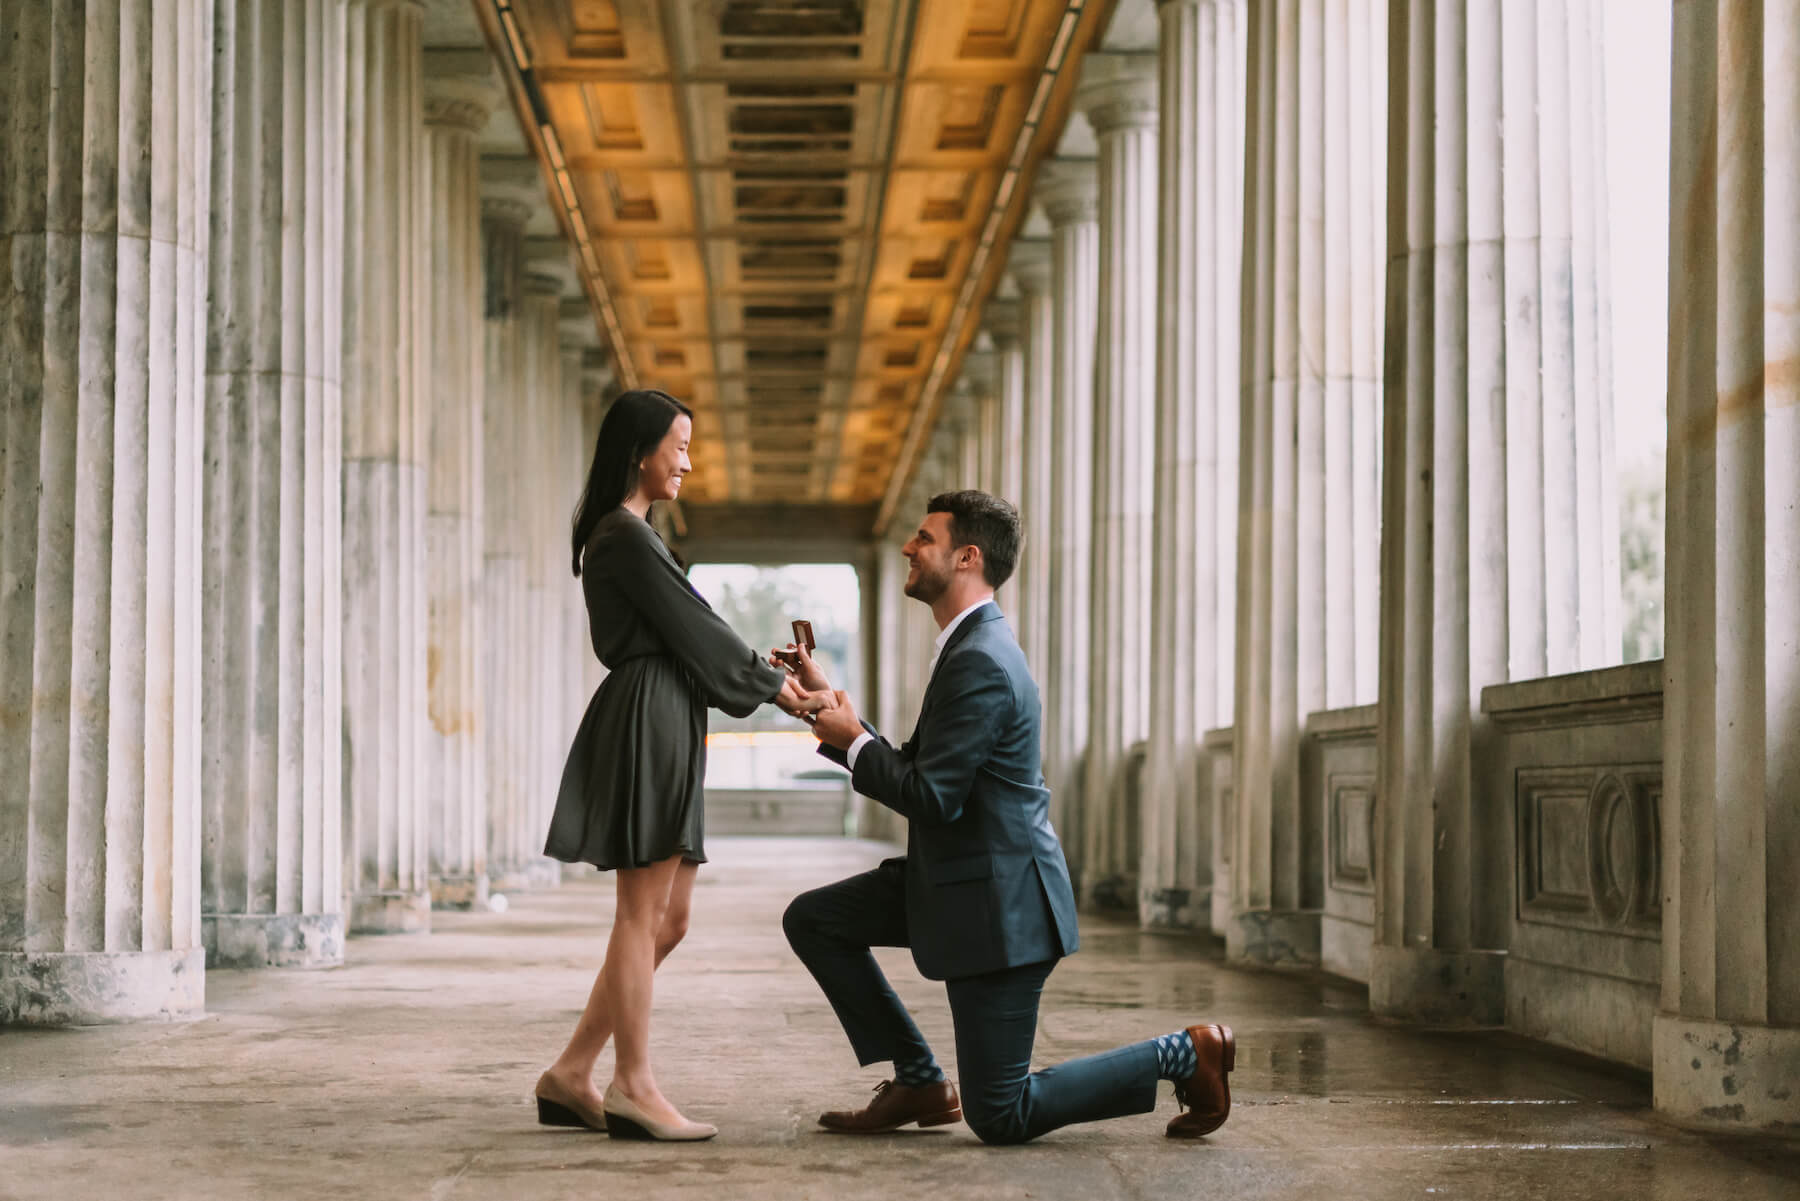 A man is holding a woman's hand and is on one knee proposing. They are standing in a historical walkway in Berlin.